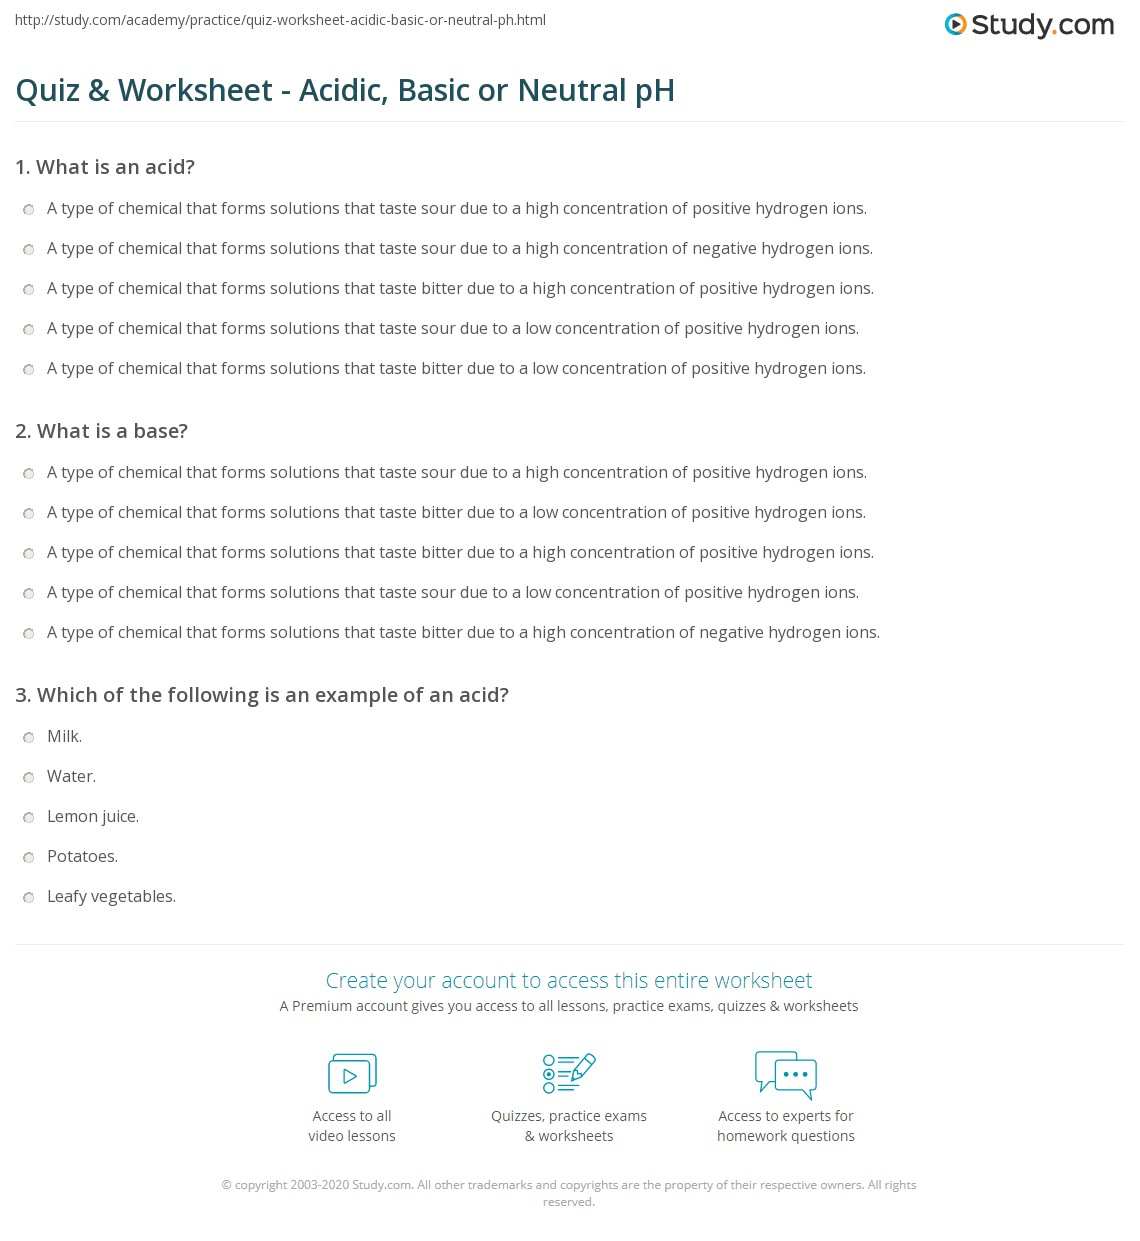 Quiz Worksheet Acidic Basic Or Neutral Ph Study Com